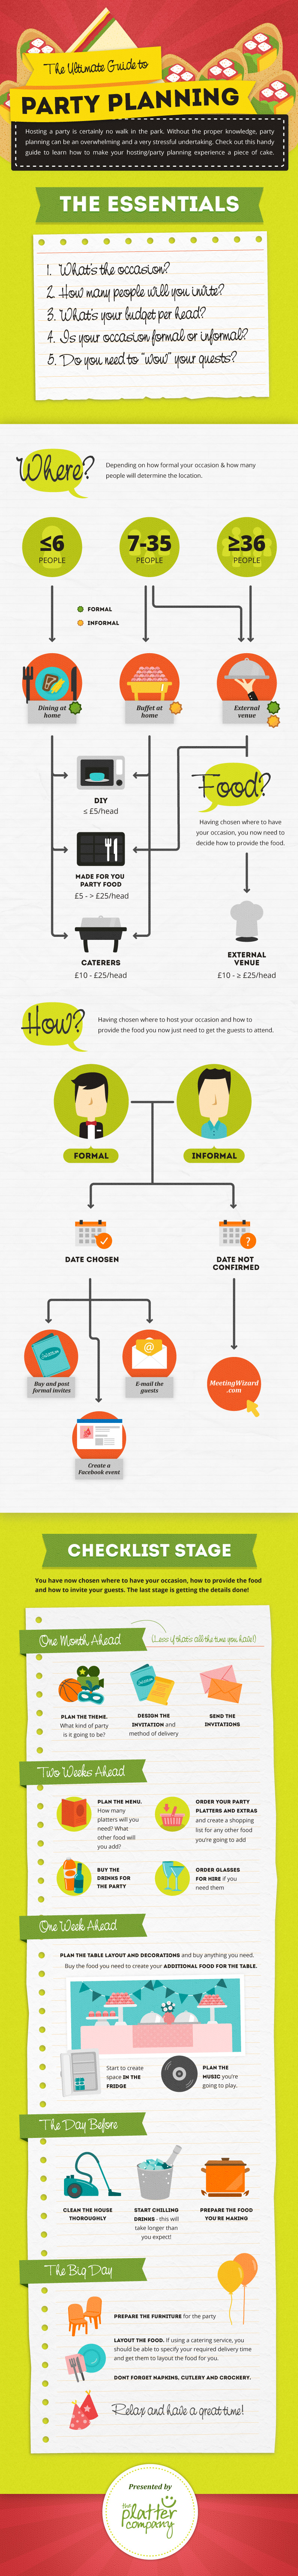 Ultimate Guide to Party Planning